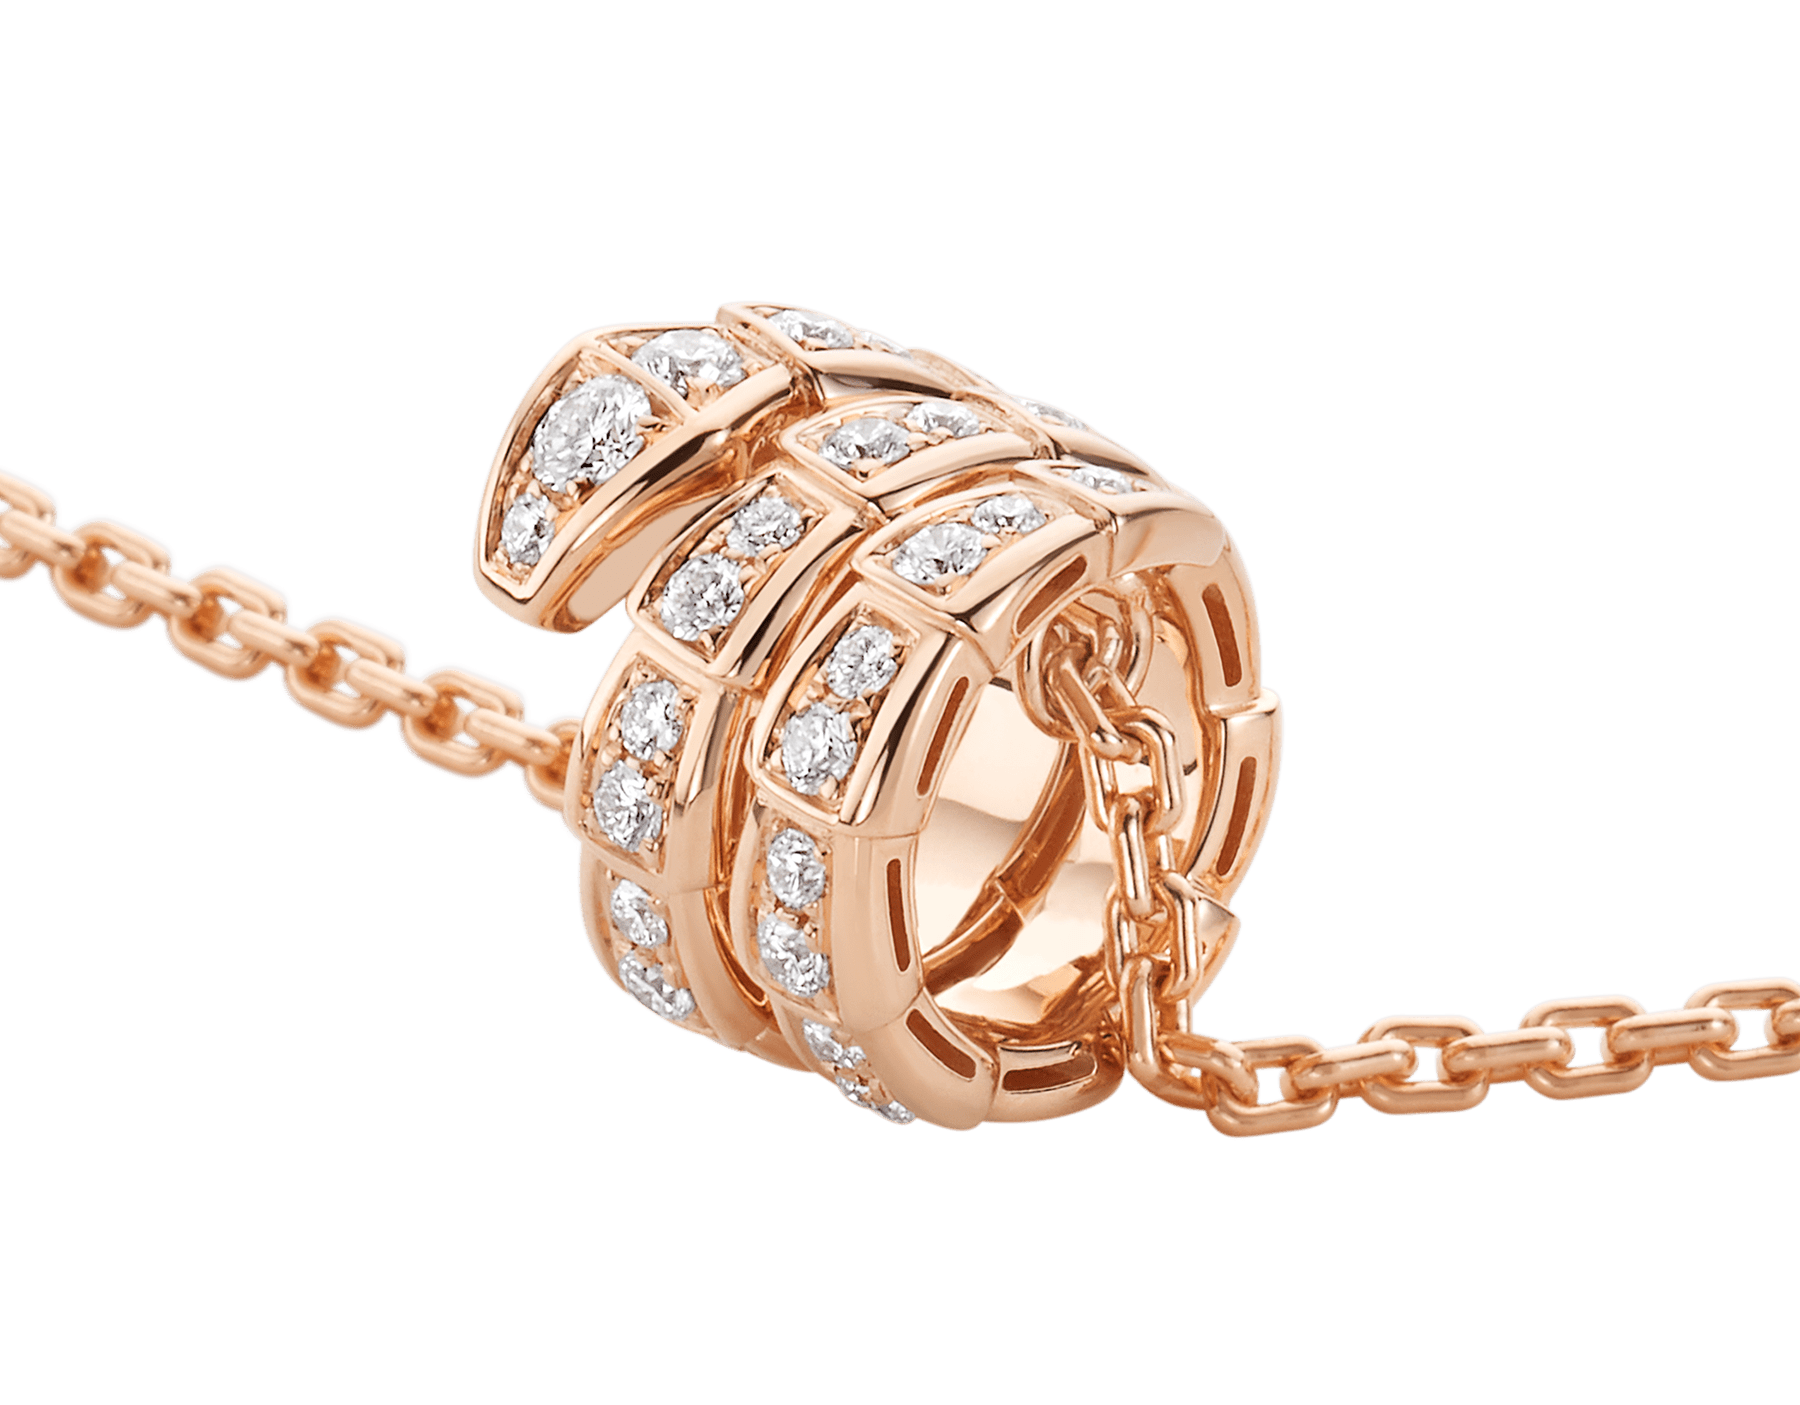 Serpenti Viper pendant necklace in 18 kt rose gold set with pavé diamonds 357795 image 3